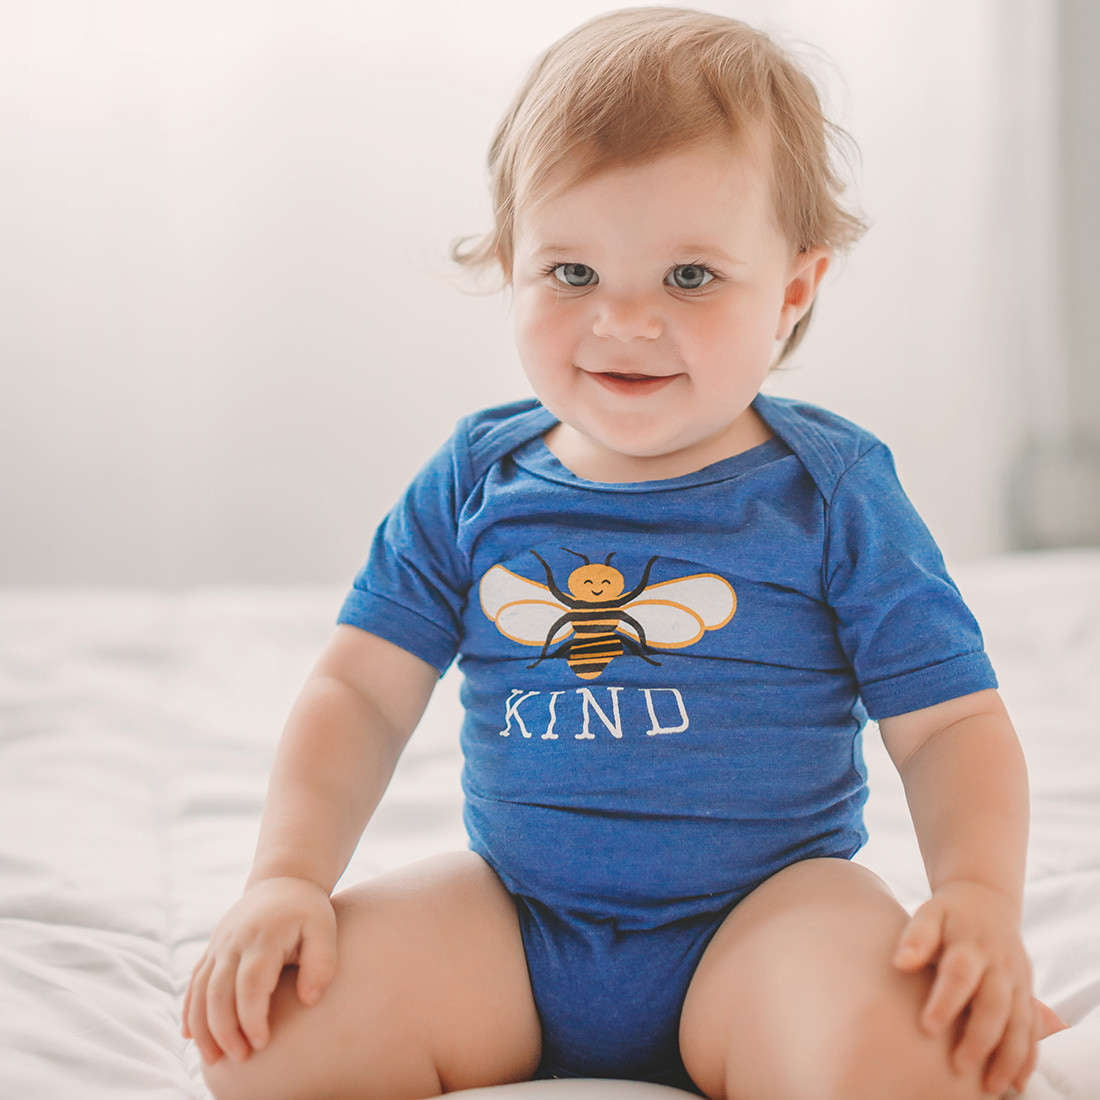 PRE-ORDER Bee Kind baby bodysuit - wholesale - Sweetpea and Co.